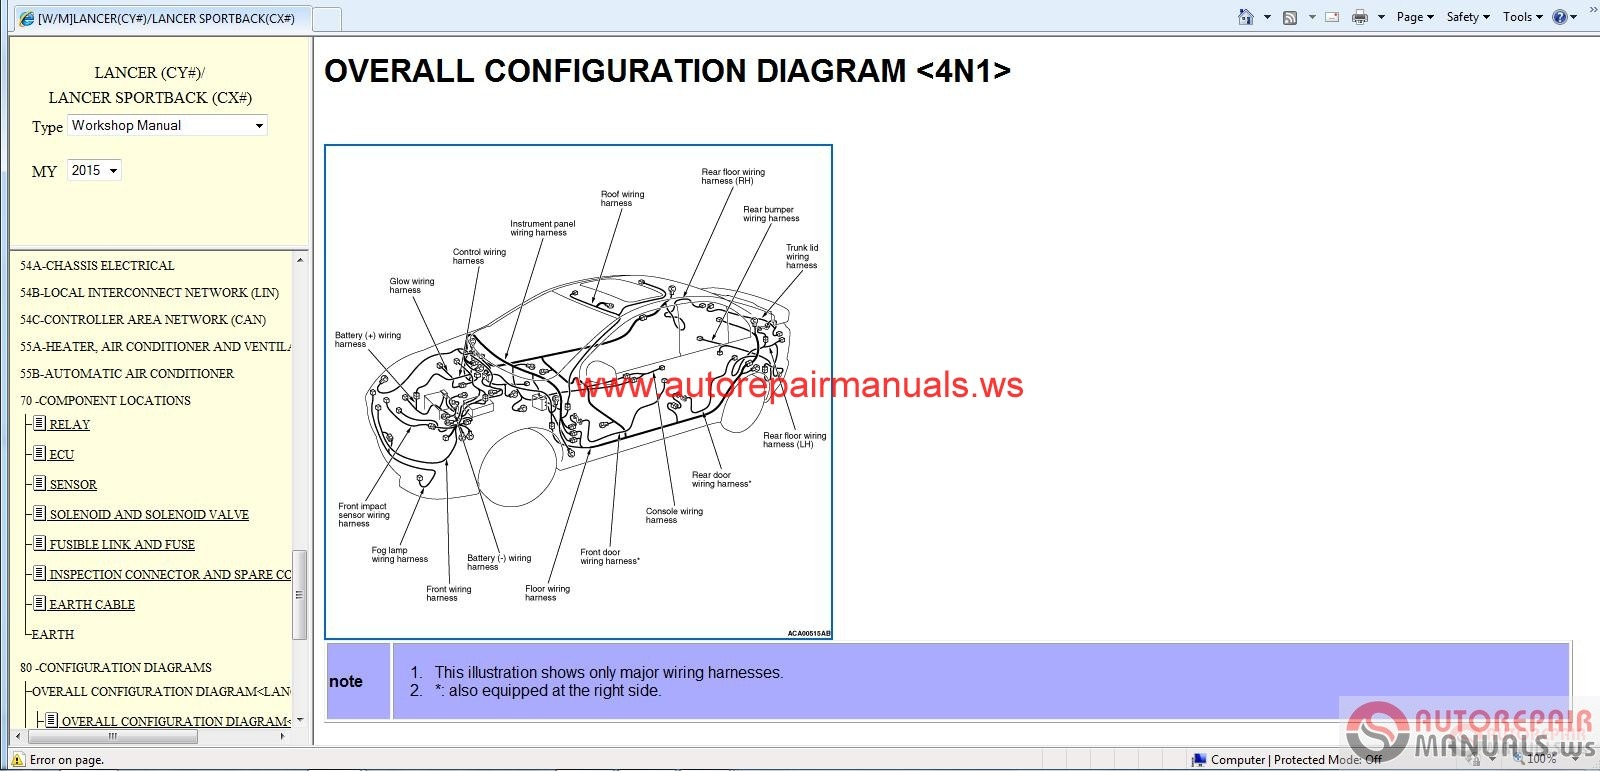 engine ecu diagram mitsubishi lancer 2015 and lancer sportback 2015 service rx8 ecu diagram #15